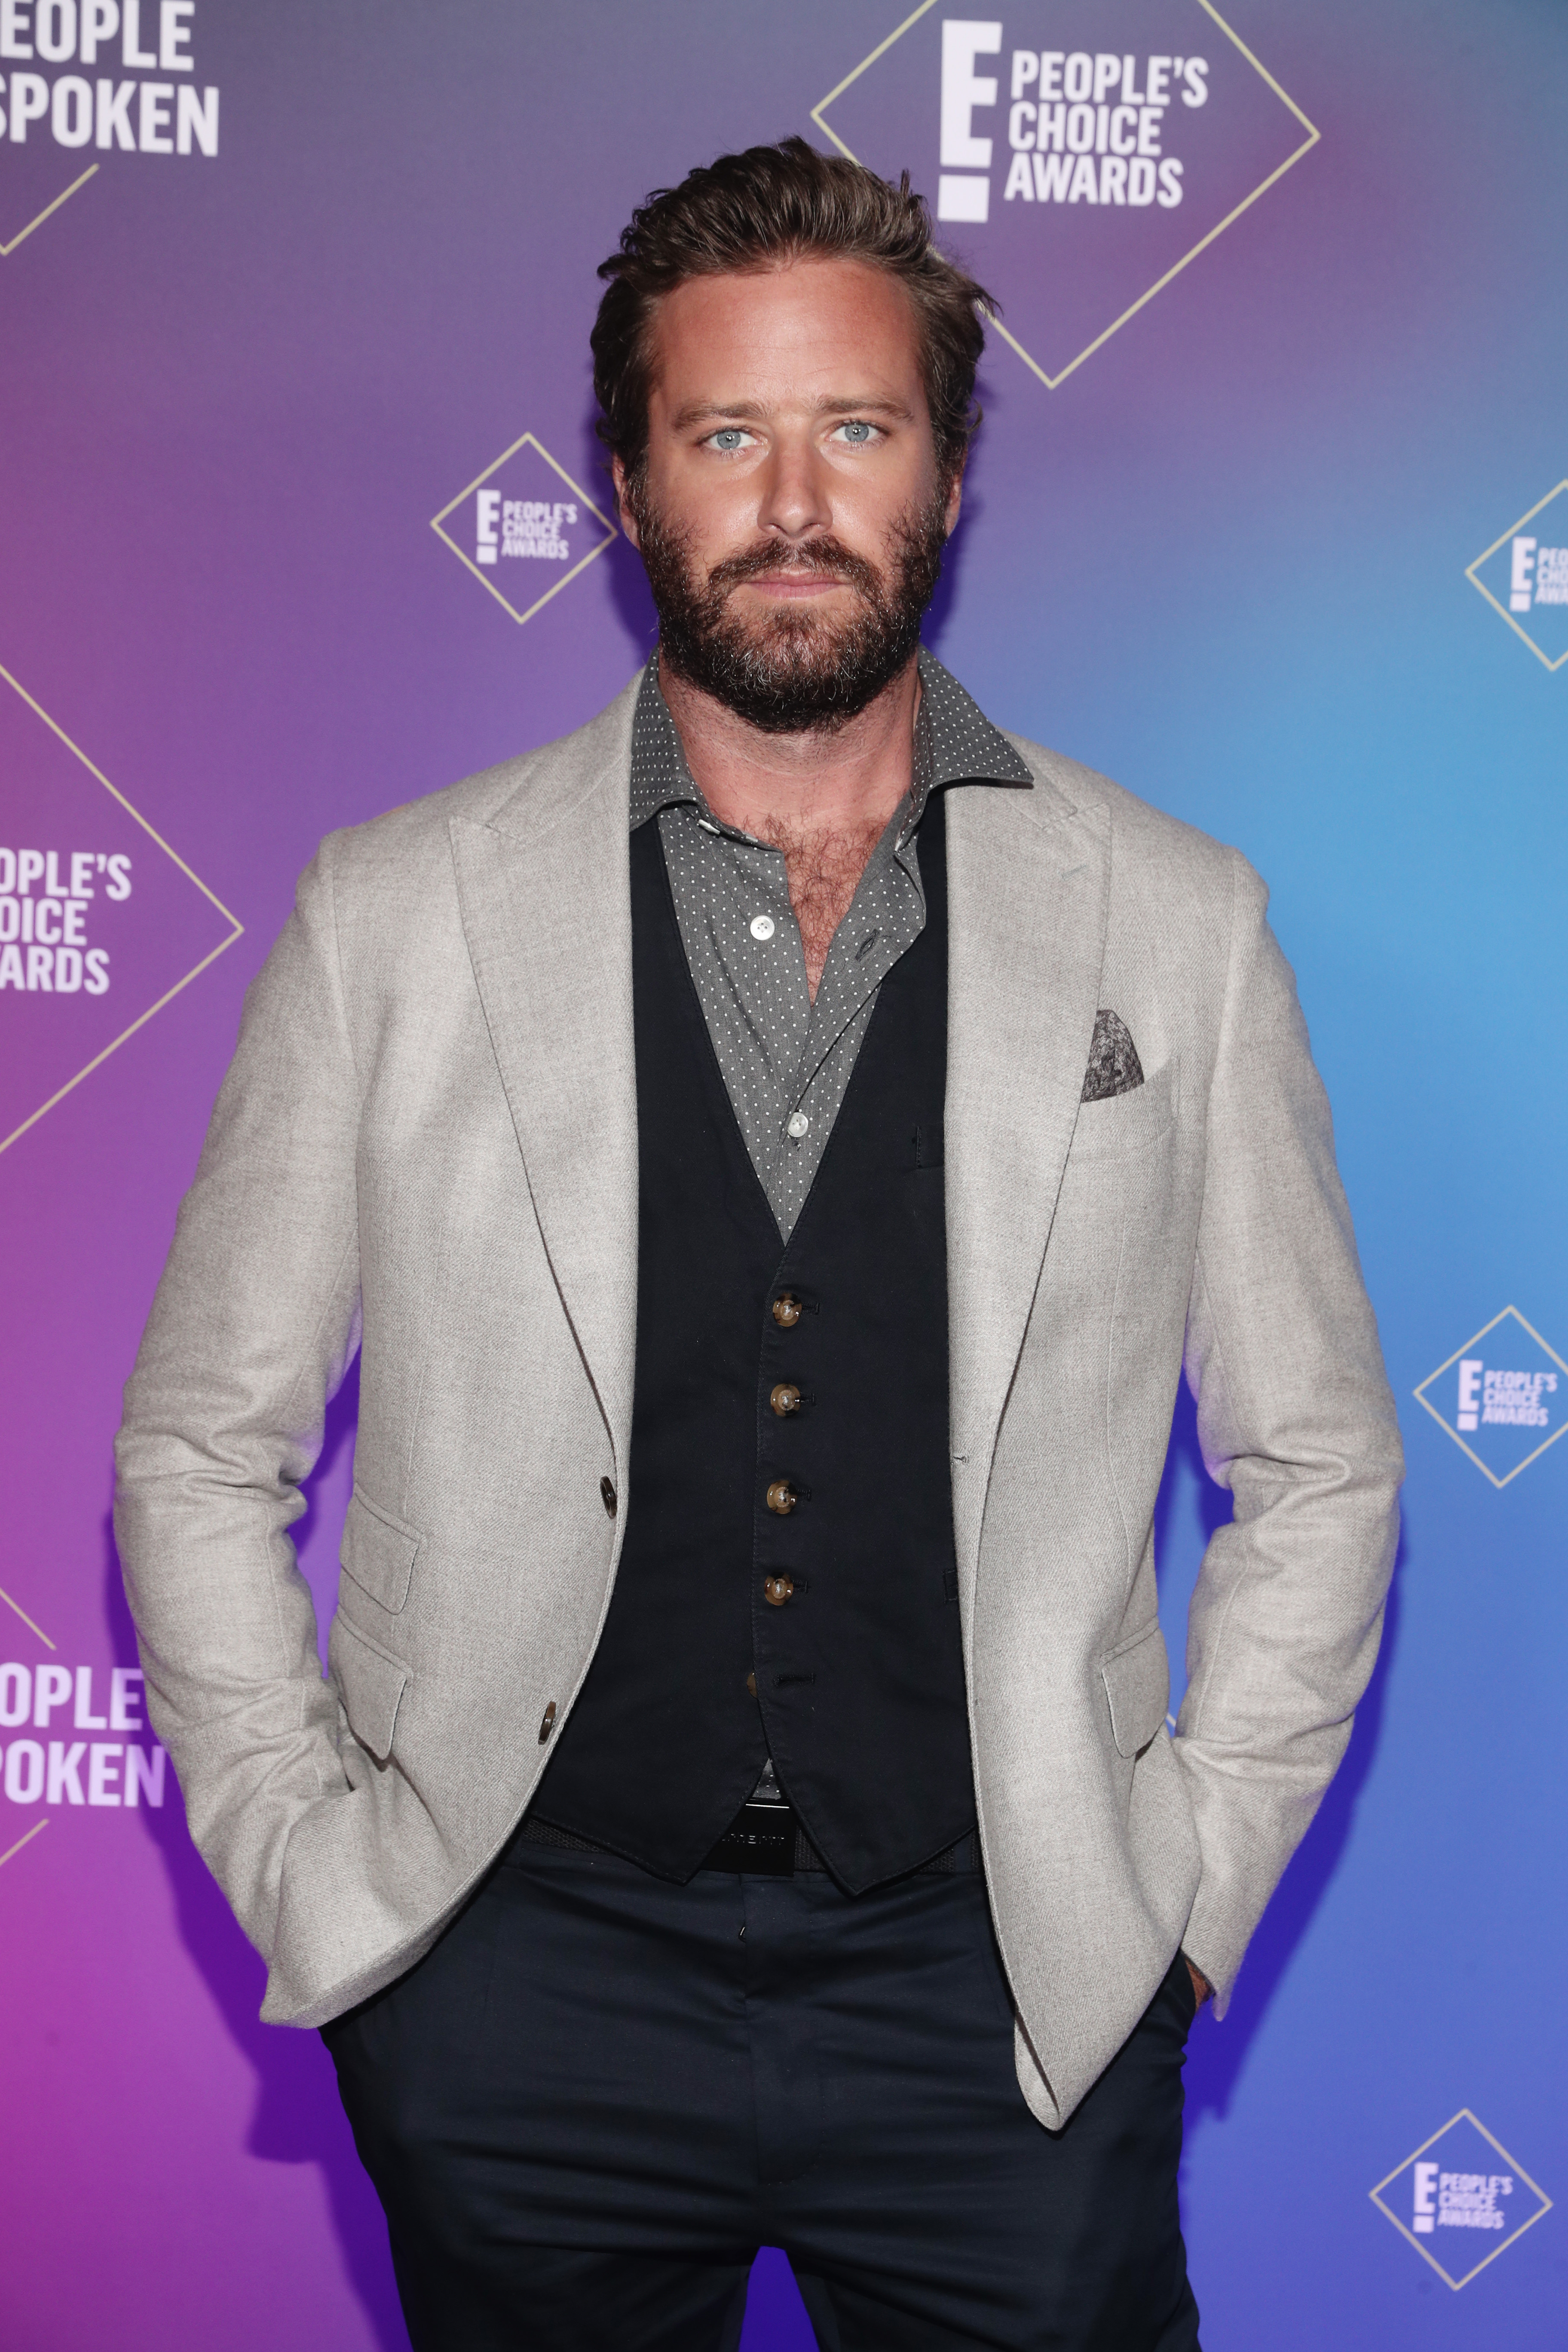 Armie Hammer attends the 2020 E! People's Choice Awards held at the Barker Hangar in Santa Monica, California and on broadcast on Sunday, November 15, 2020.